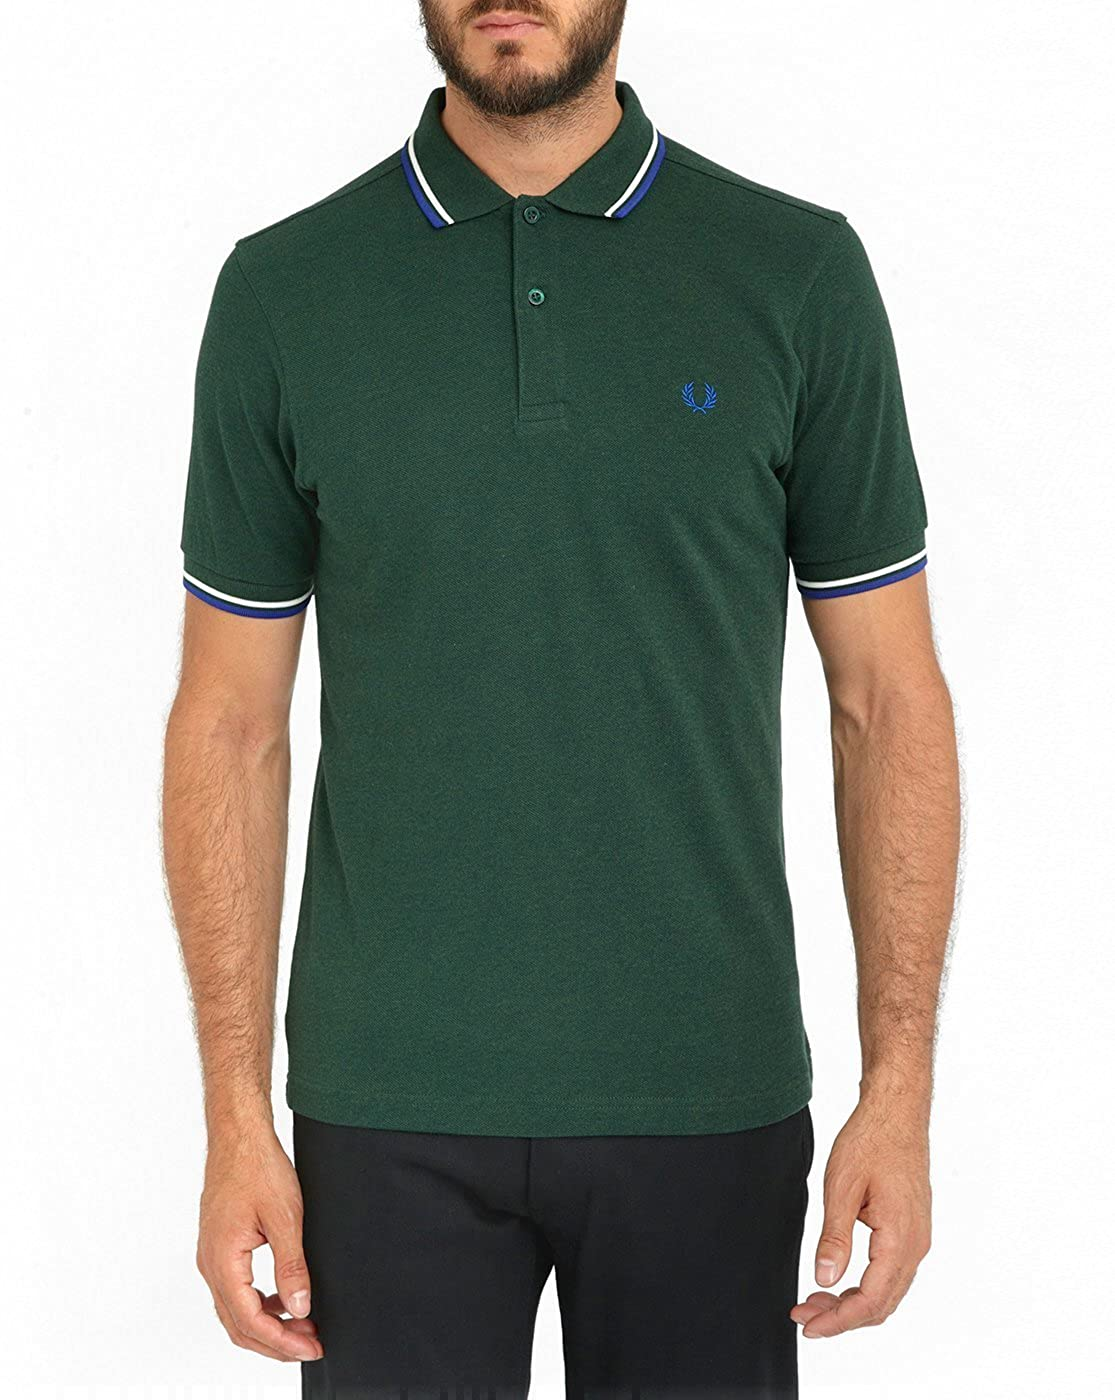 Fred Perry Authentics Slim Fit Twin Tipped Polo IVY XL: Amazon.es ...